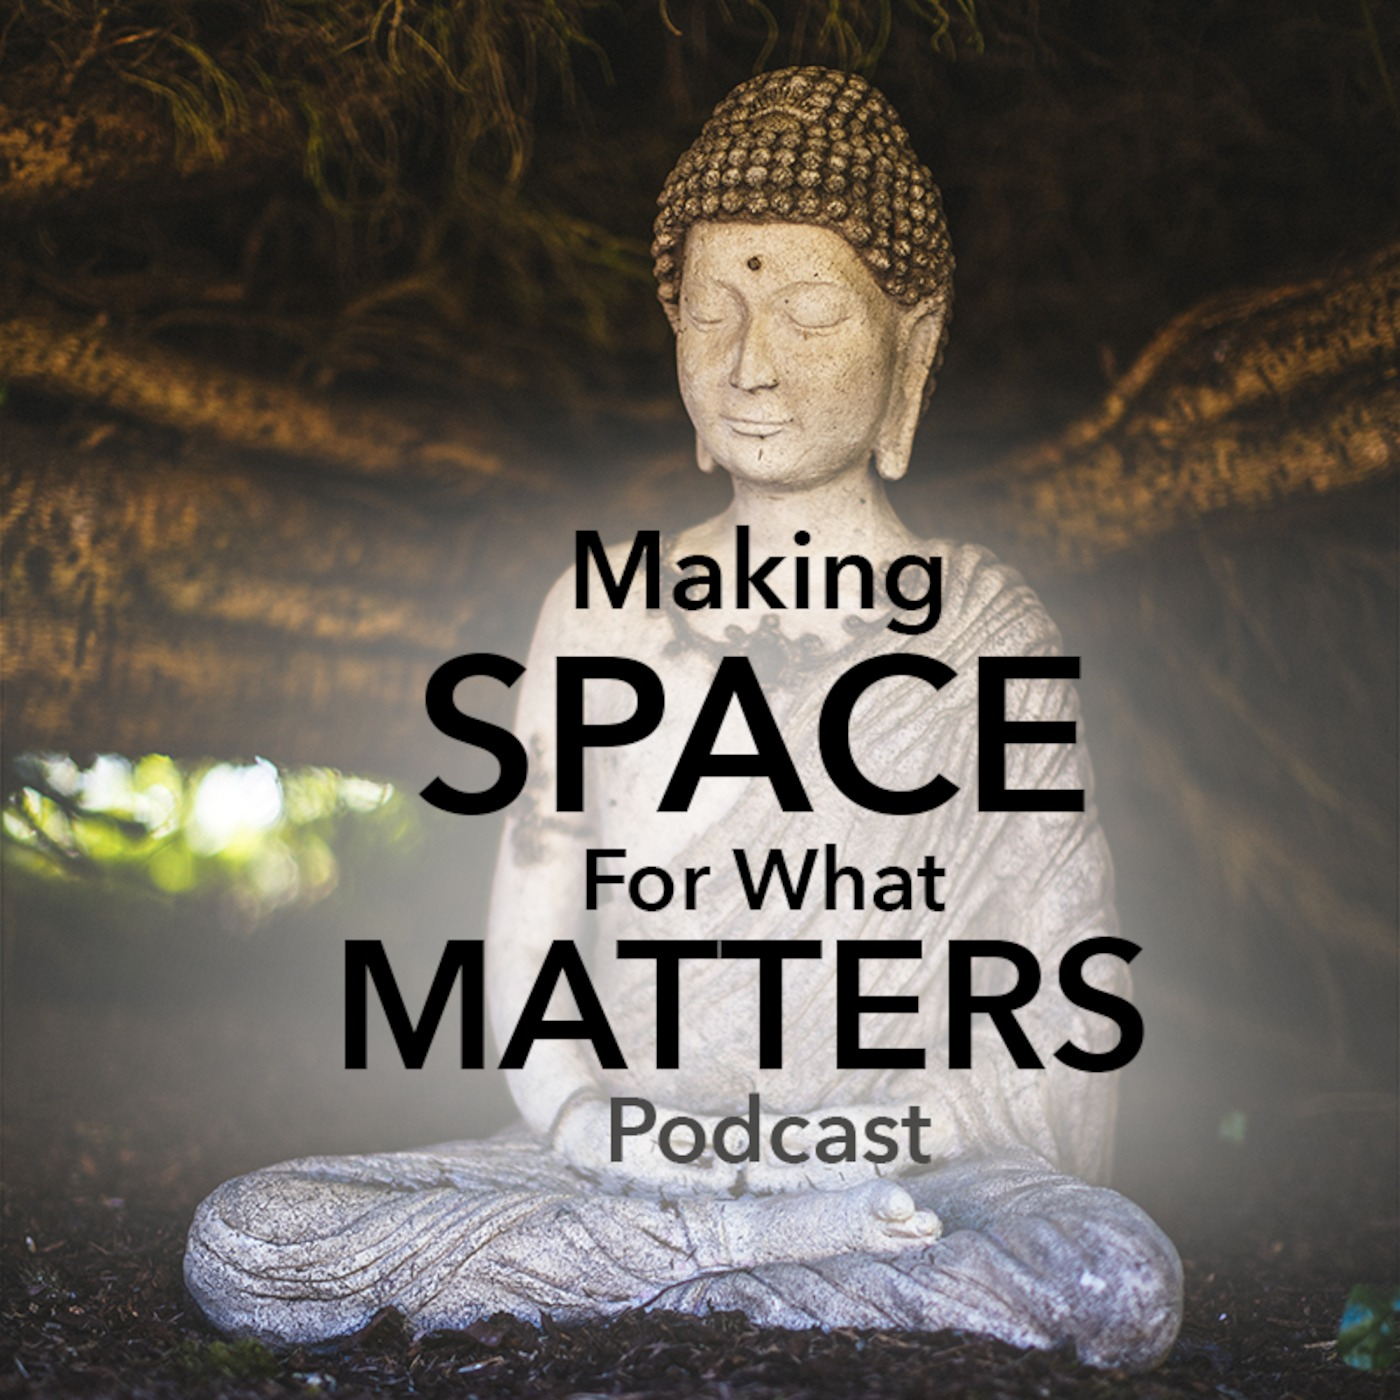 Making Space for What Matters Podcast